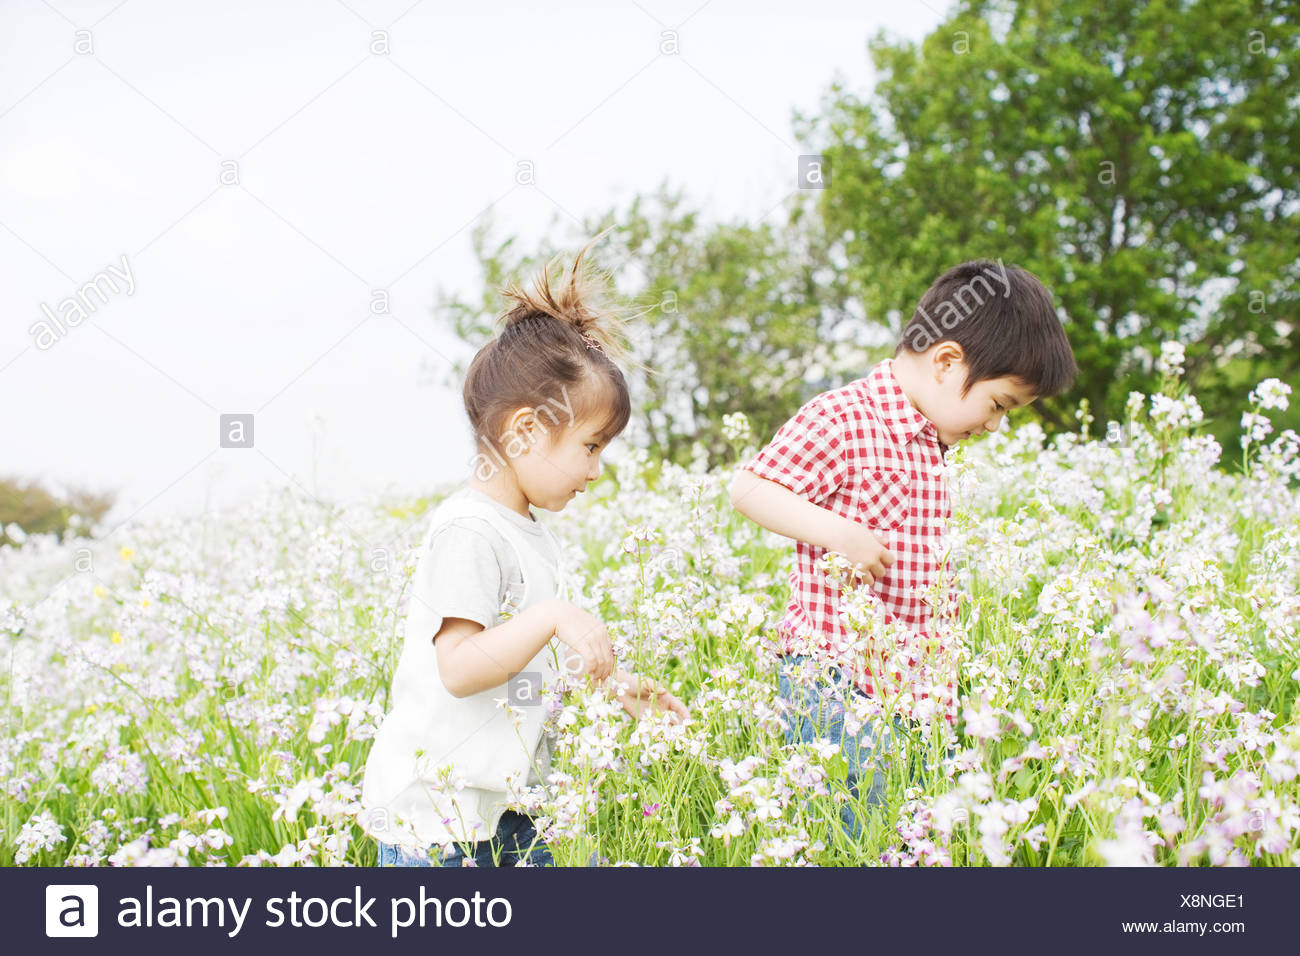 Children exploring in a field - Stock Image